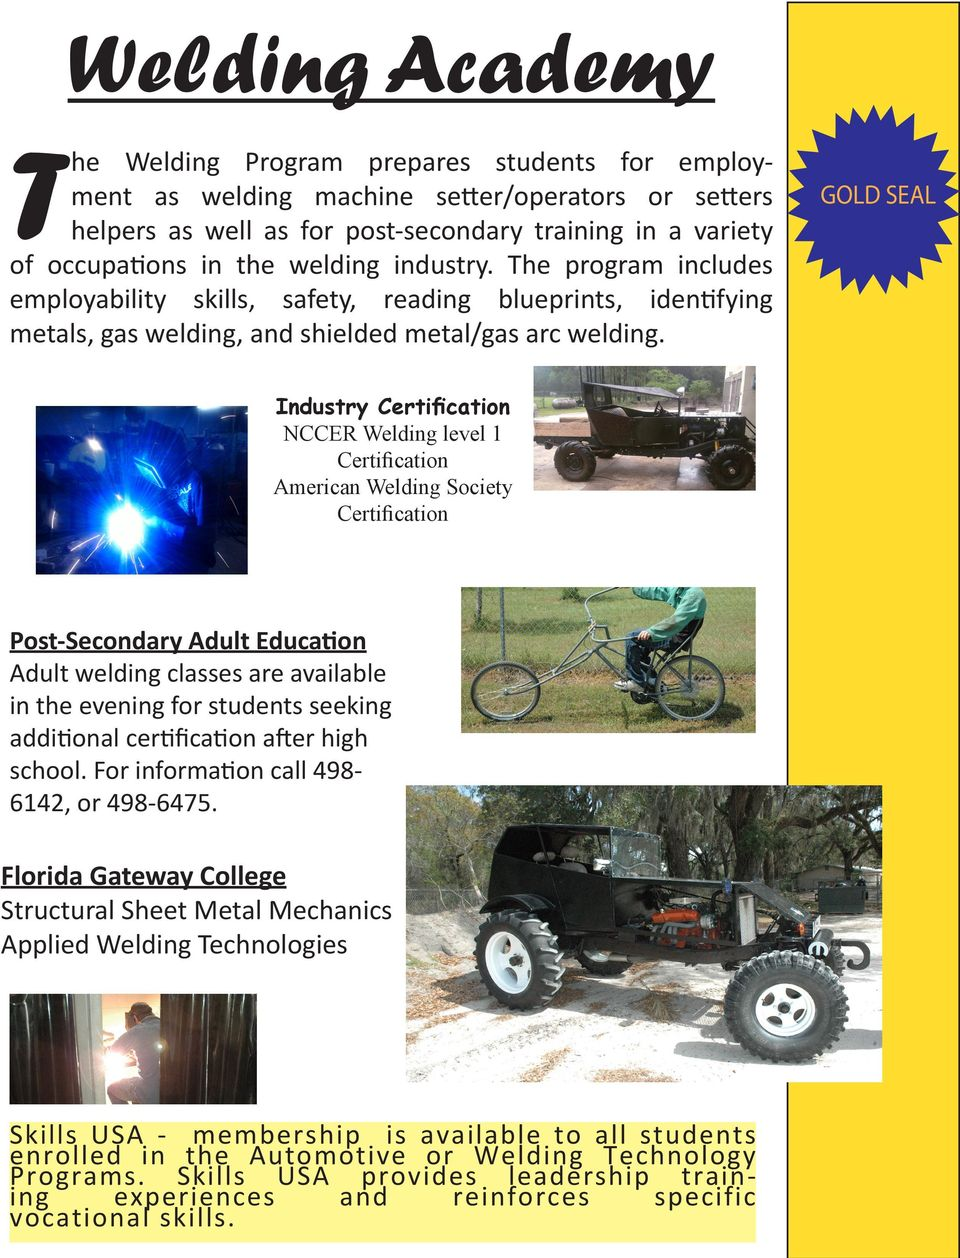 Industry Certification NCCER Welding level 1 Certification American Welding Society Certification Post-Secondary Adult Education Adult welding classes are available in the evening for students